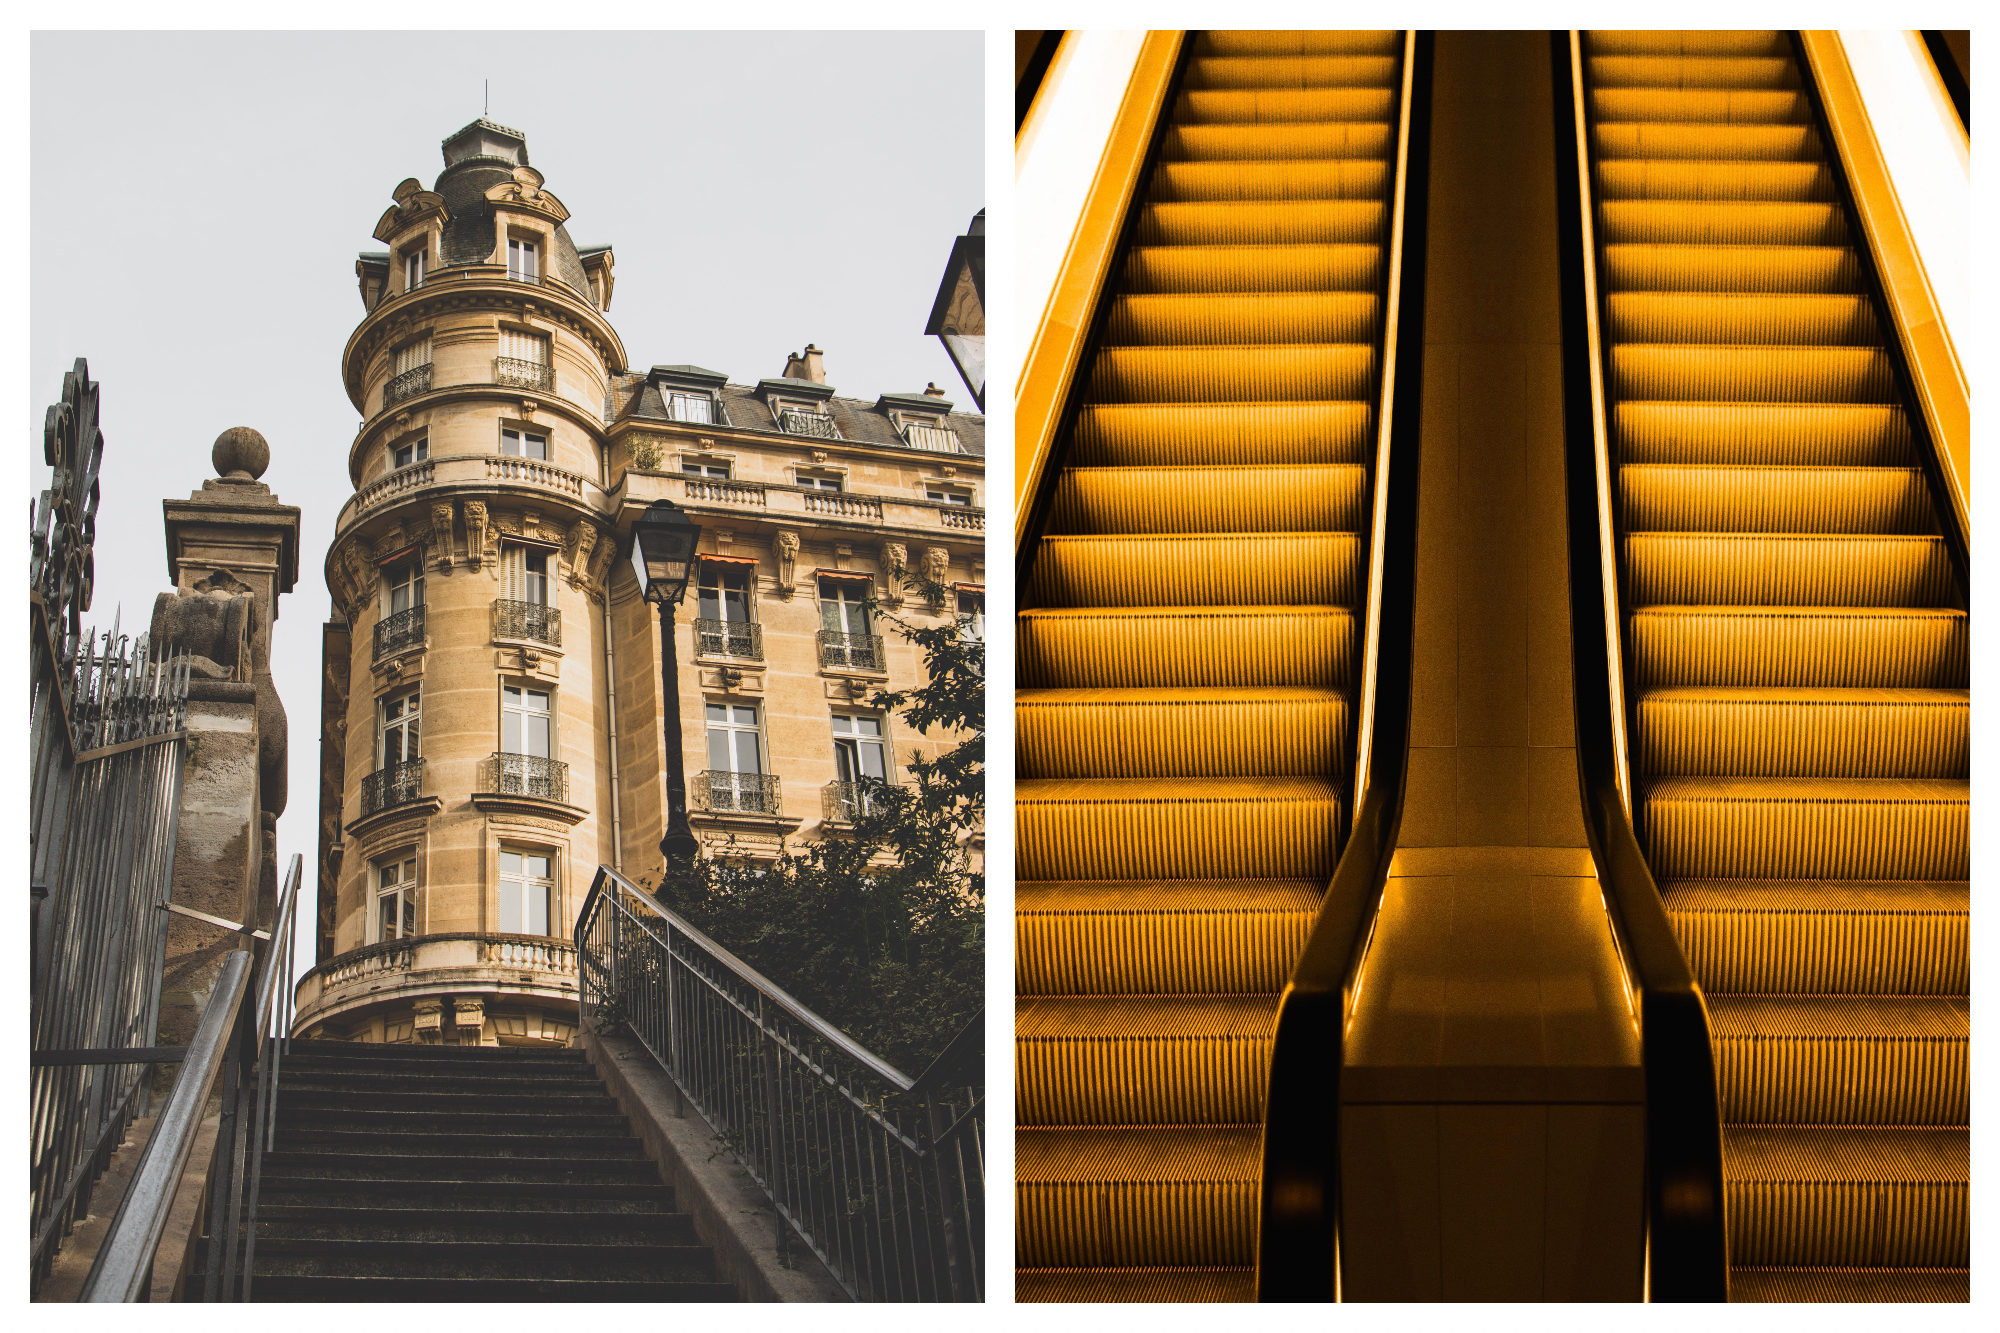 A view of an ornate honey colored building at the top of a flight of stone stairs (left). A pair of elevators under a bright yellow light (right).